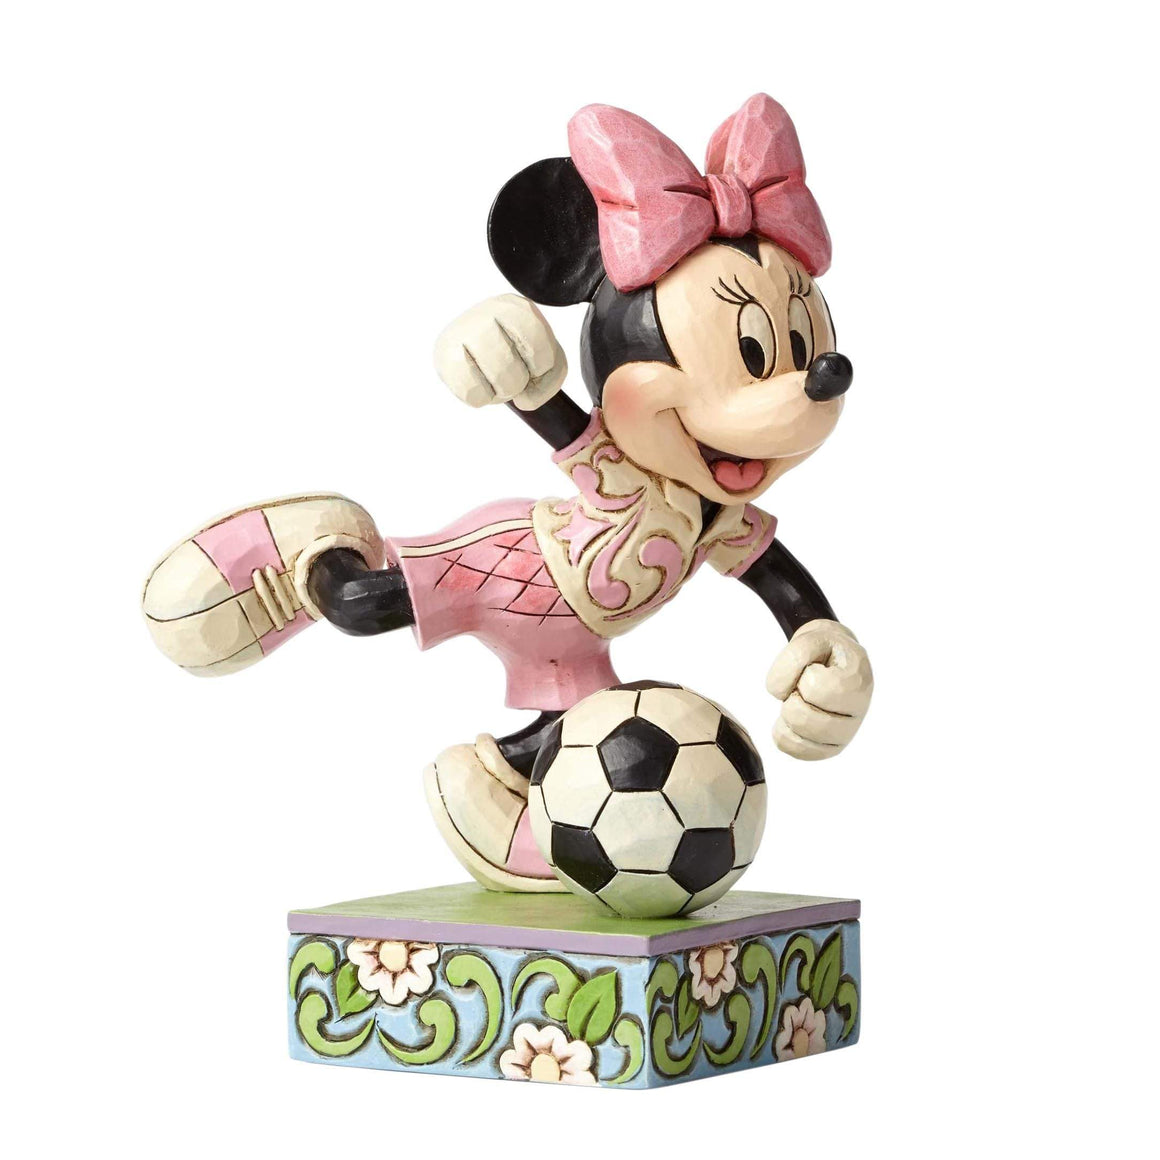 Disney Traditions by Jim Shore Goal! - Minnie Mouse Figurine